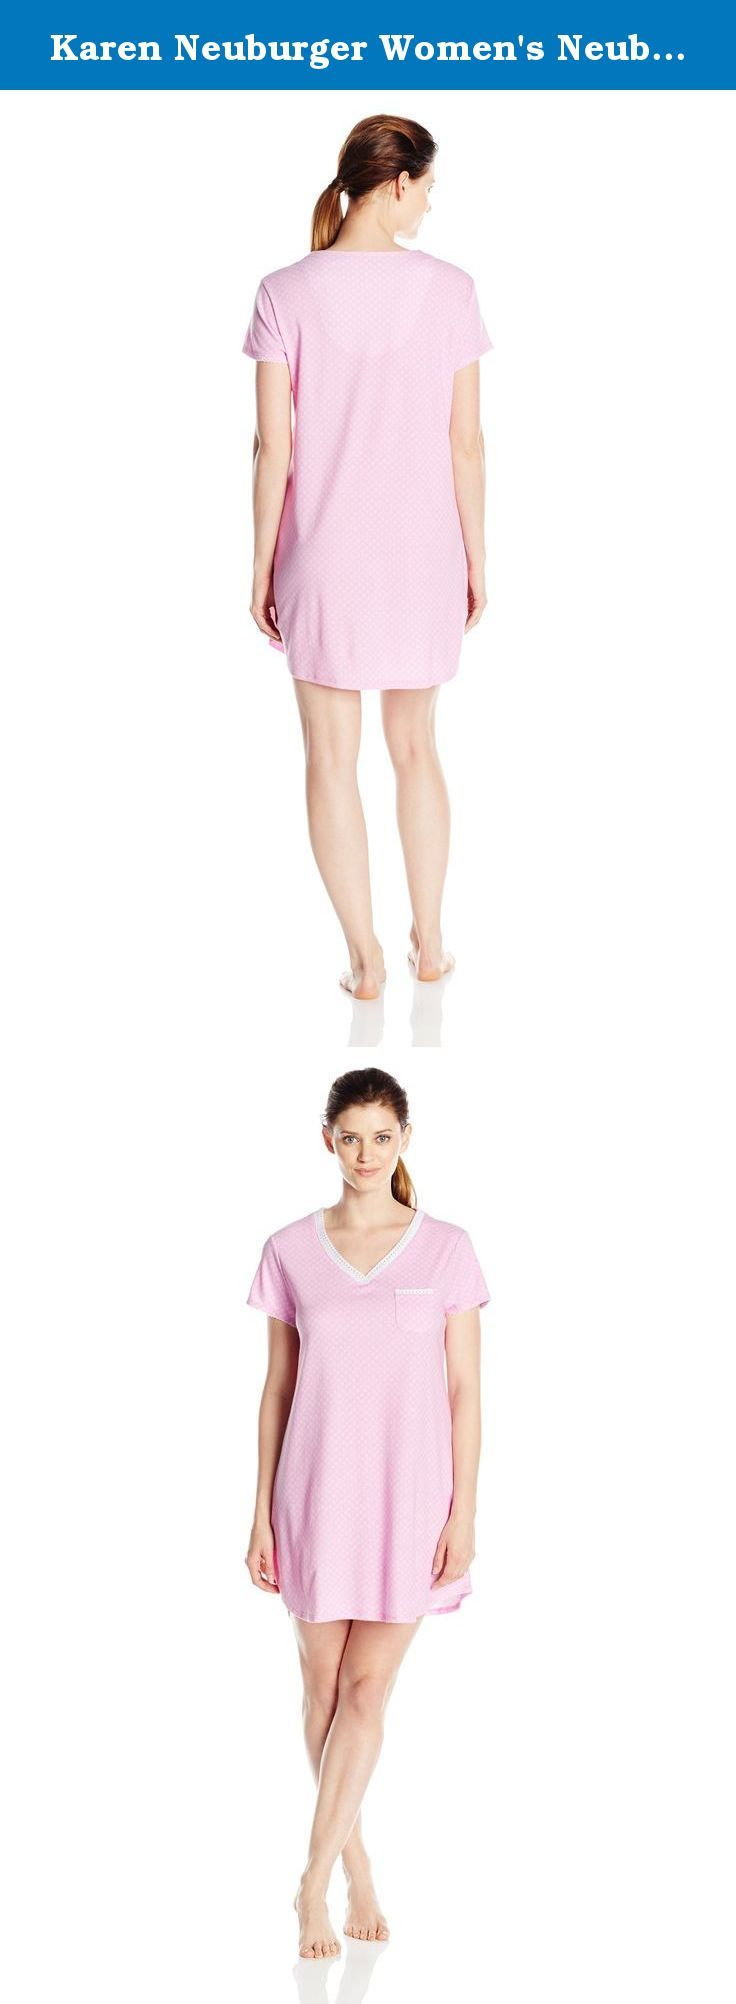 Karen Neuburger Women's Neuberger Short Sleeve Pullover Nightshirt, Me Dot/Pink, X-Large. You'll want to lounge around in these pajamas all day Karen Neuburger sleepwear starts with light weight, cozy fabric (it's the softest we could find) and an easy fit. Next we add unique details-such as an embroidered pocket or fun contrast piping-to make these pajamas simply your favorite. Karen Neuburger started the all-day sleepwear revolution by designing pajamas she wanted to stay in all day…